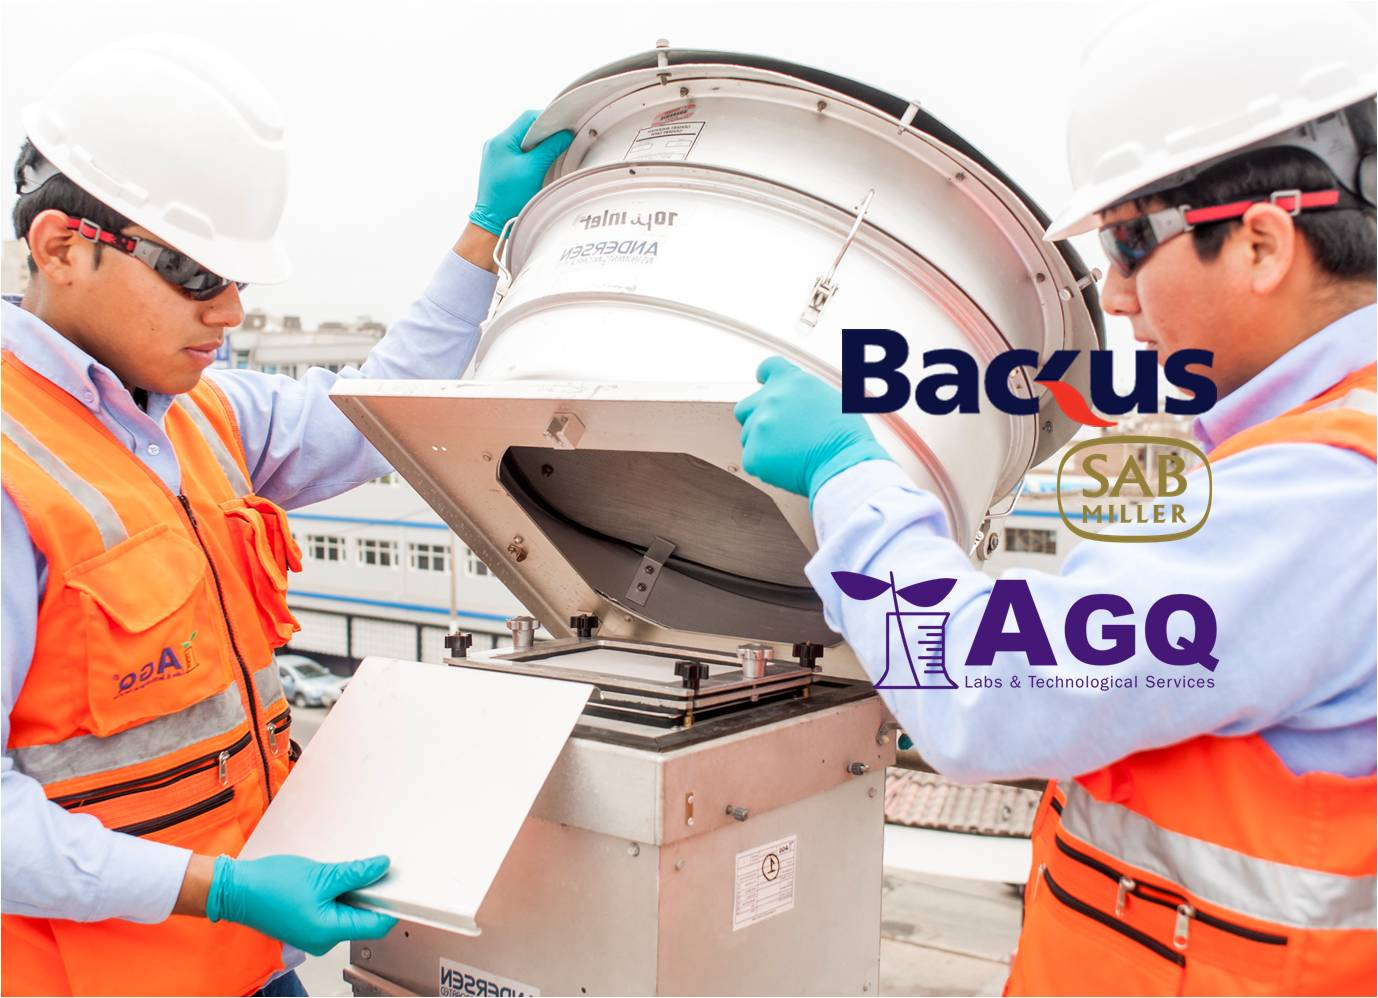 AGQ Labs realizará monitoreo ambiental para Backus,